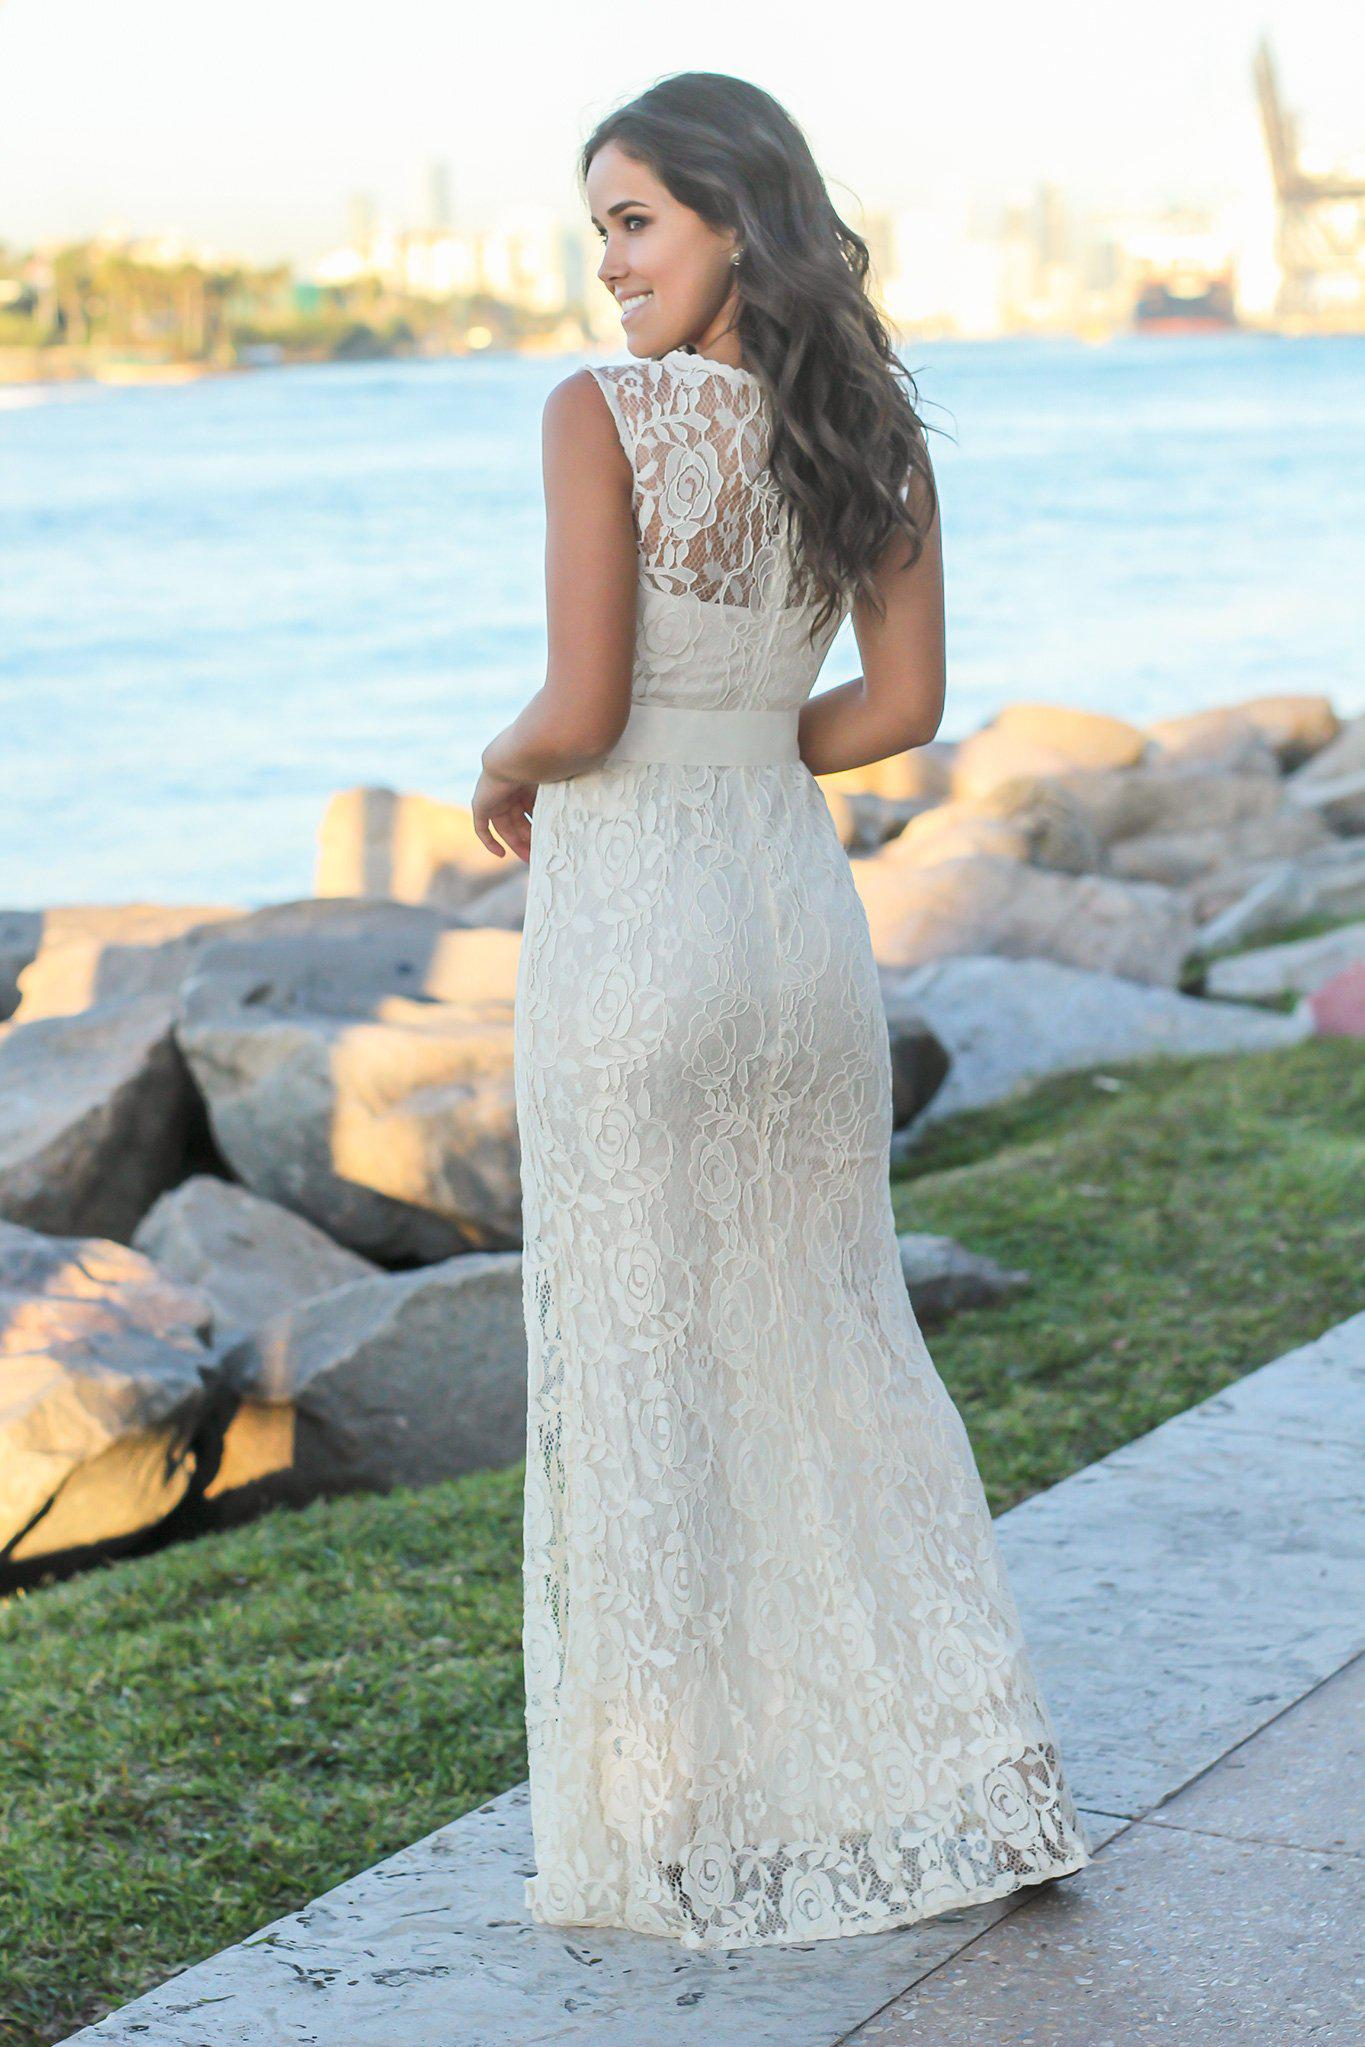 Beige Lace Maxi Dress with Tie Waist and Side Slit